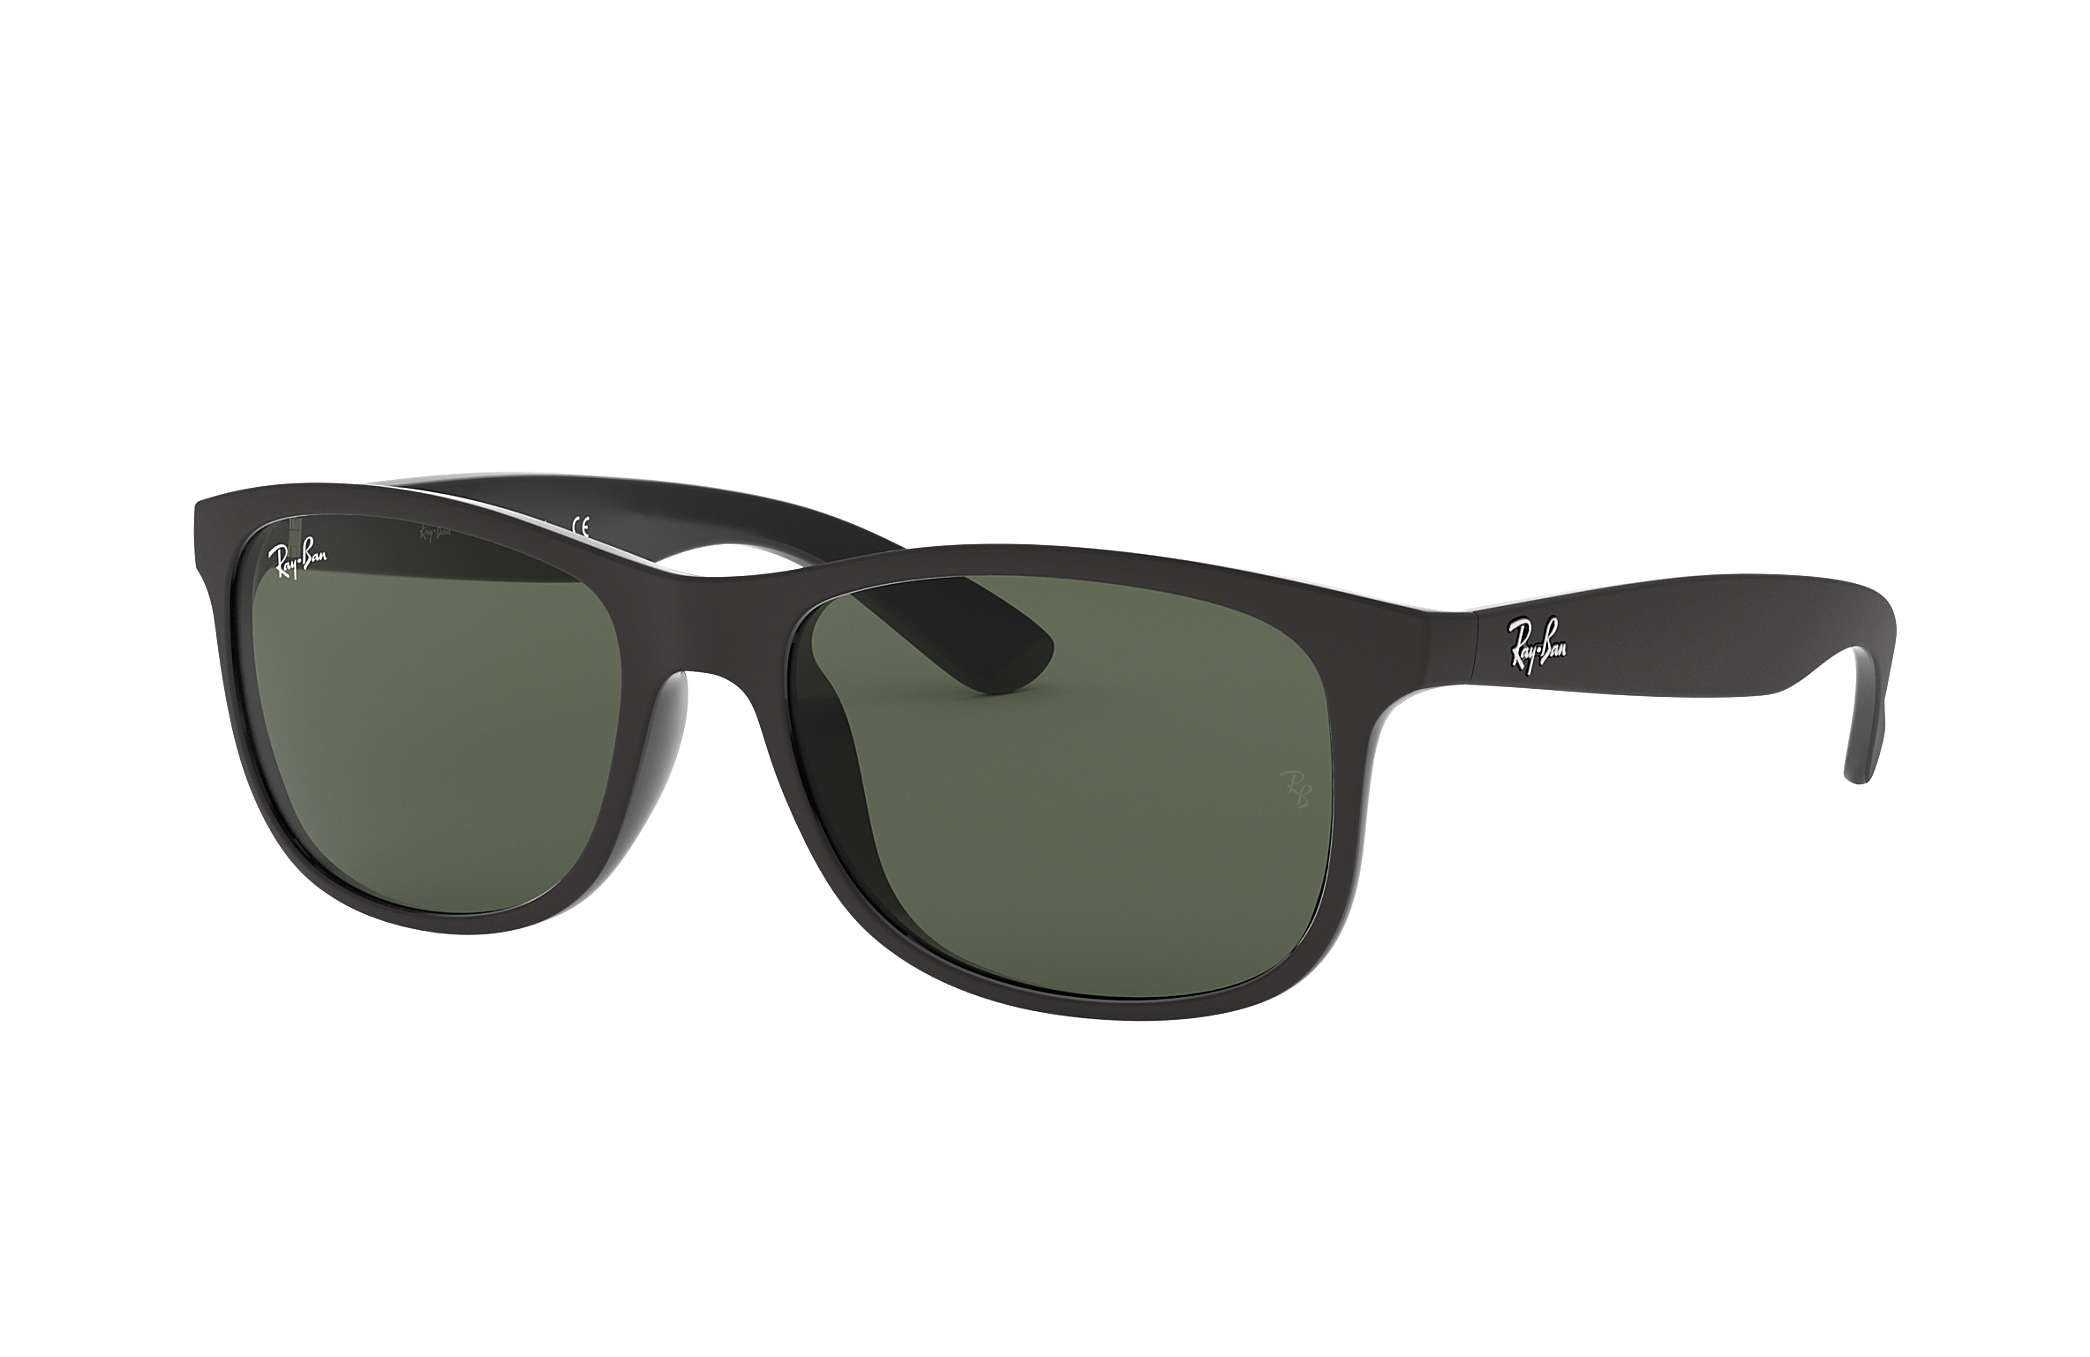 9f52af13d1 Ray-Ban Justin Color Mix RB4165 Black - Nylon - Blue Lenses ...